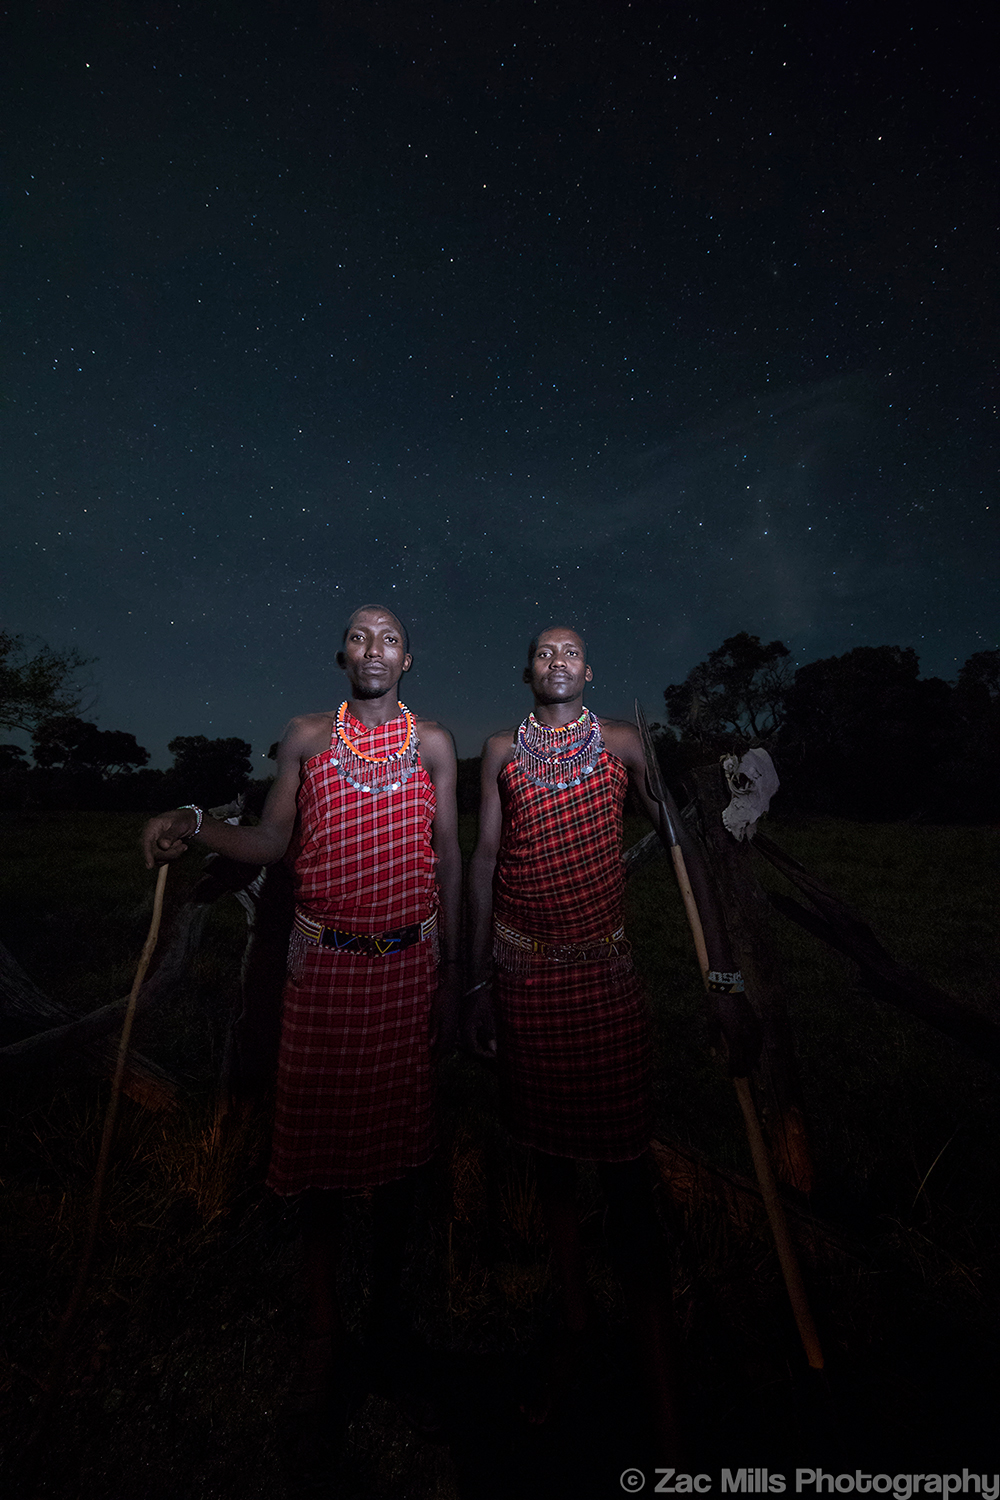 strong-proud-the-maasai-web